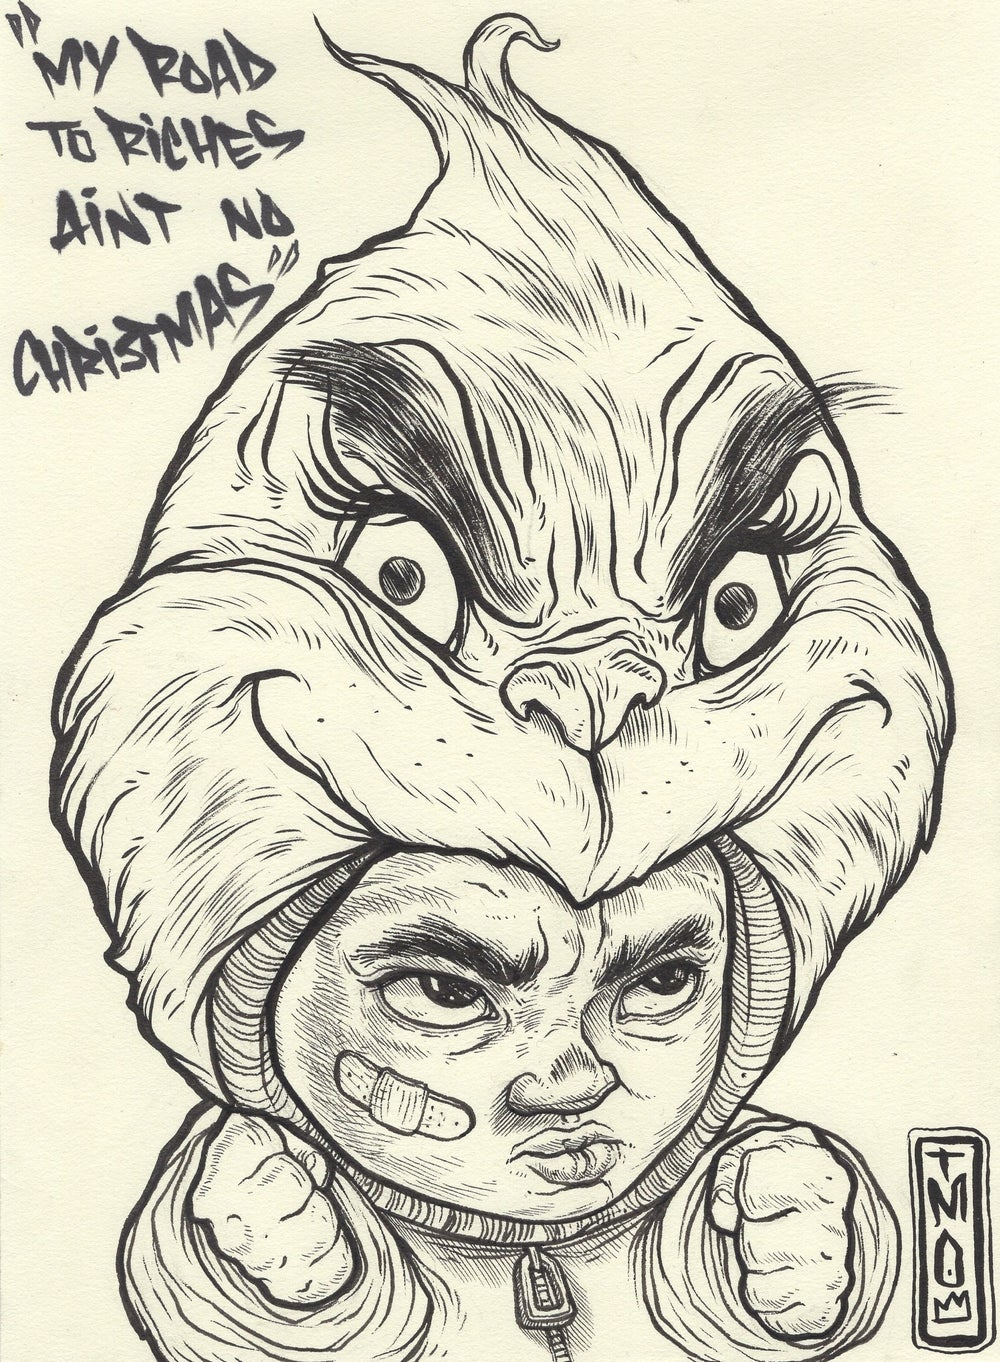 Image of Little Grinch